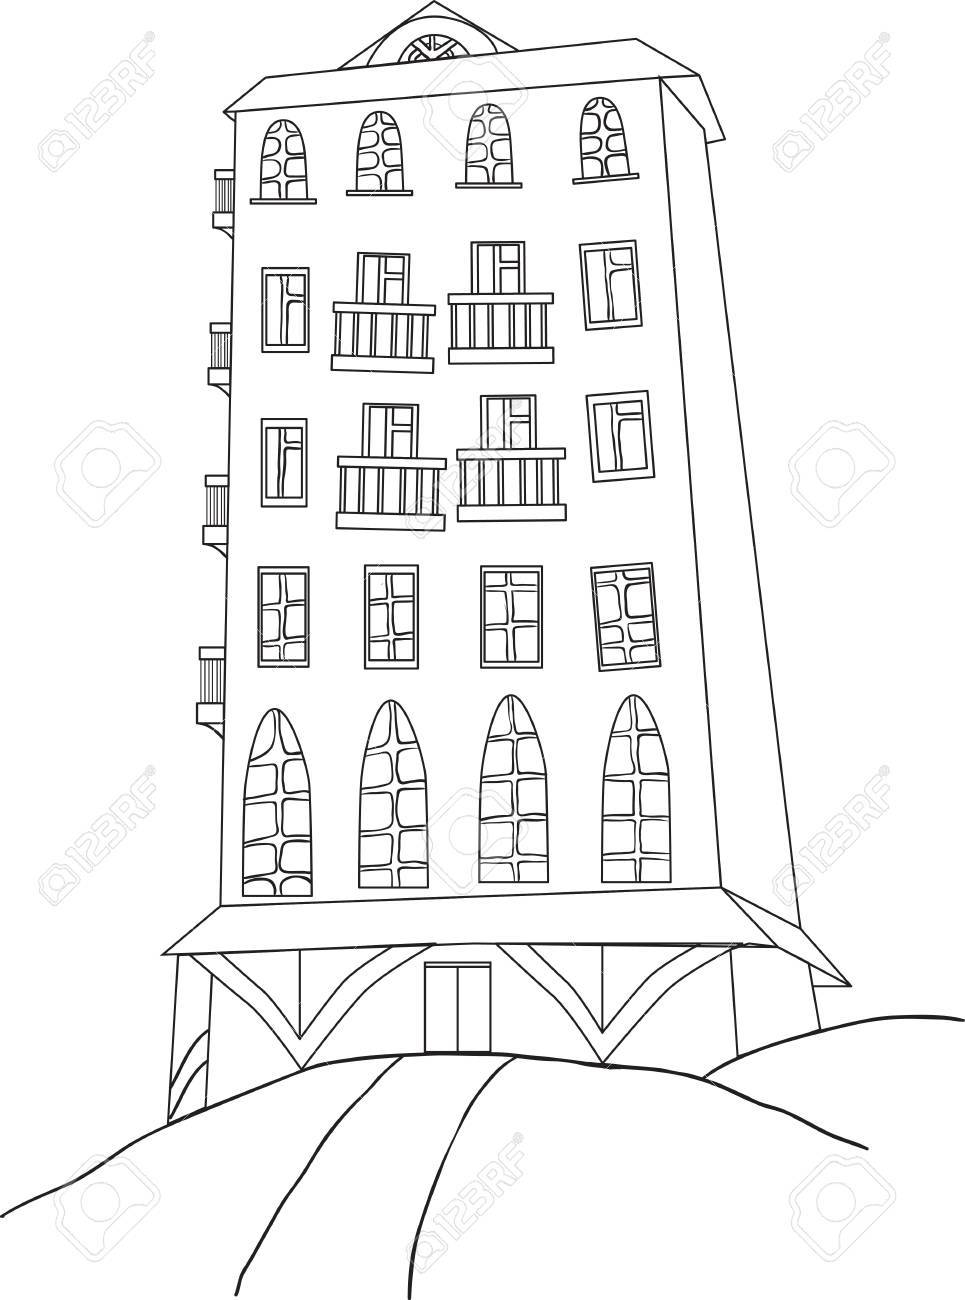 City Skyscraper Color Book Royalty Free Cliparts, Vectors, And Stock ...